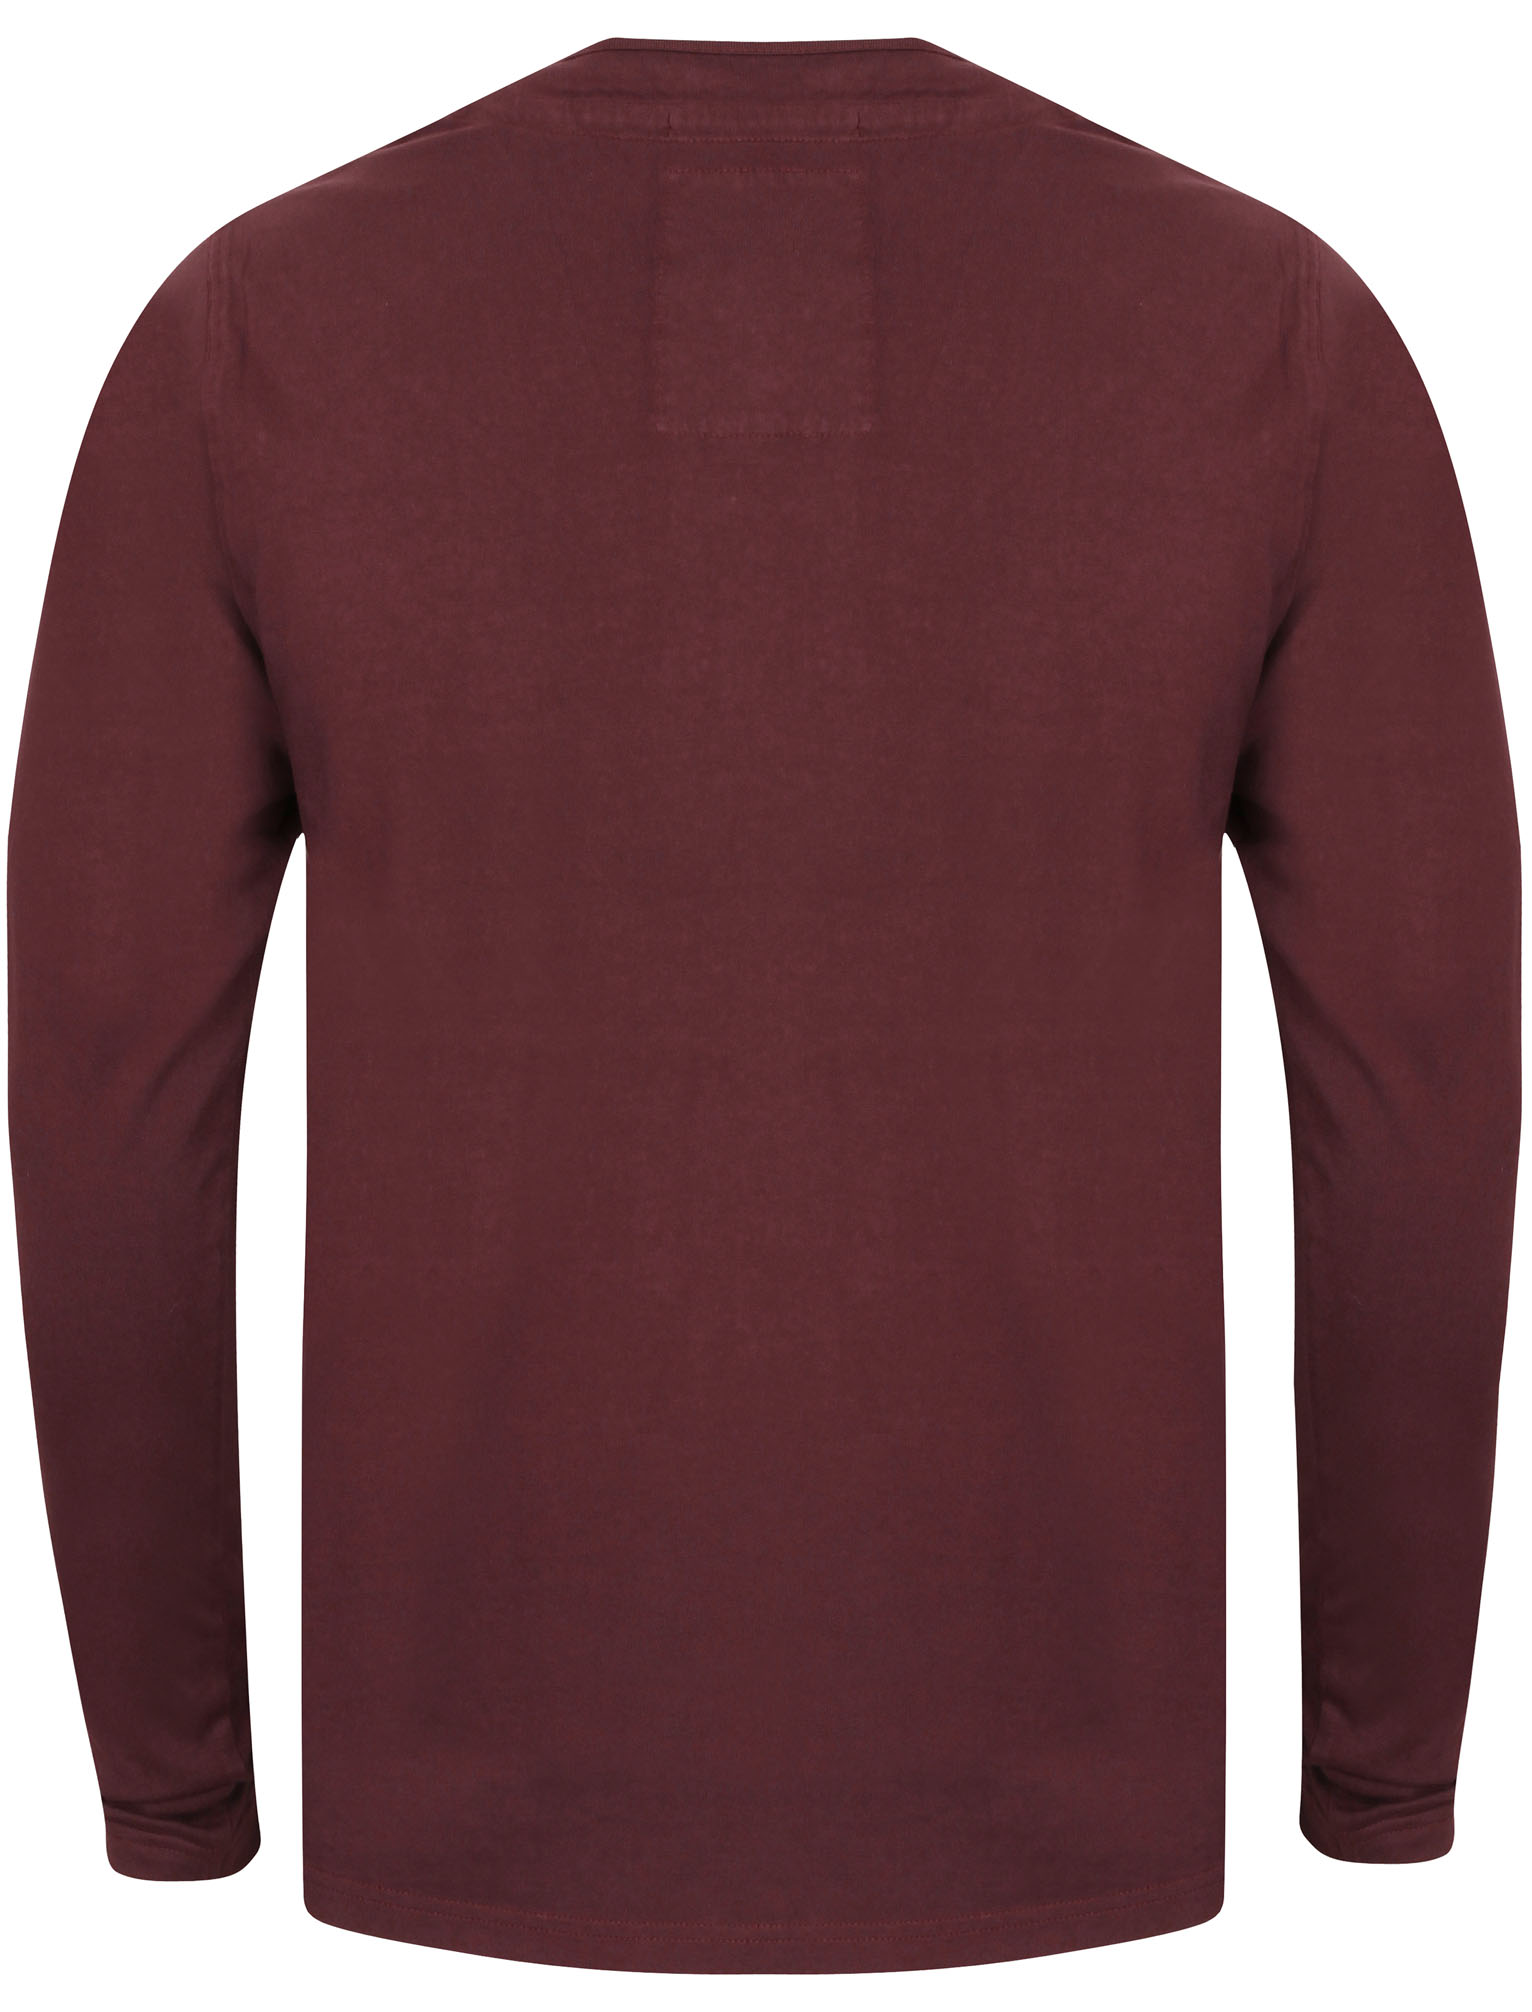 New-Mens-Tokyo-Laundry-Winter-Pines-Crew-Neck-Cotton-Long-Sleeve-Top-Size-S-XL thumbnail 7